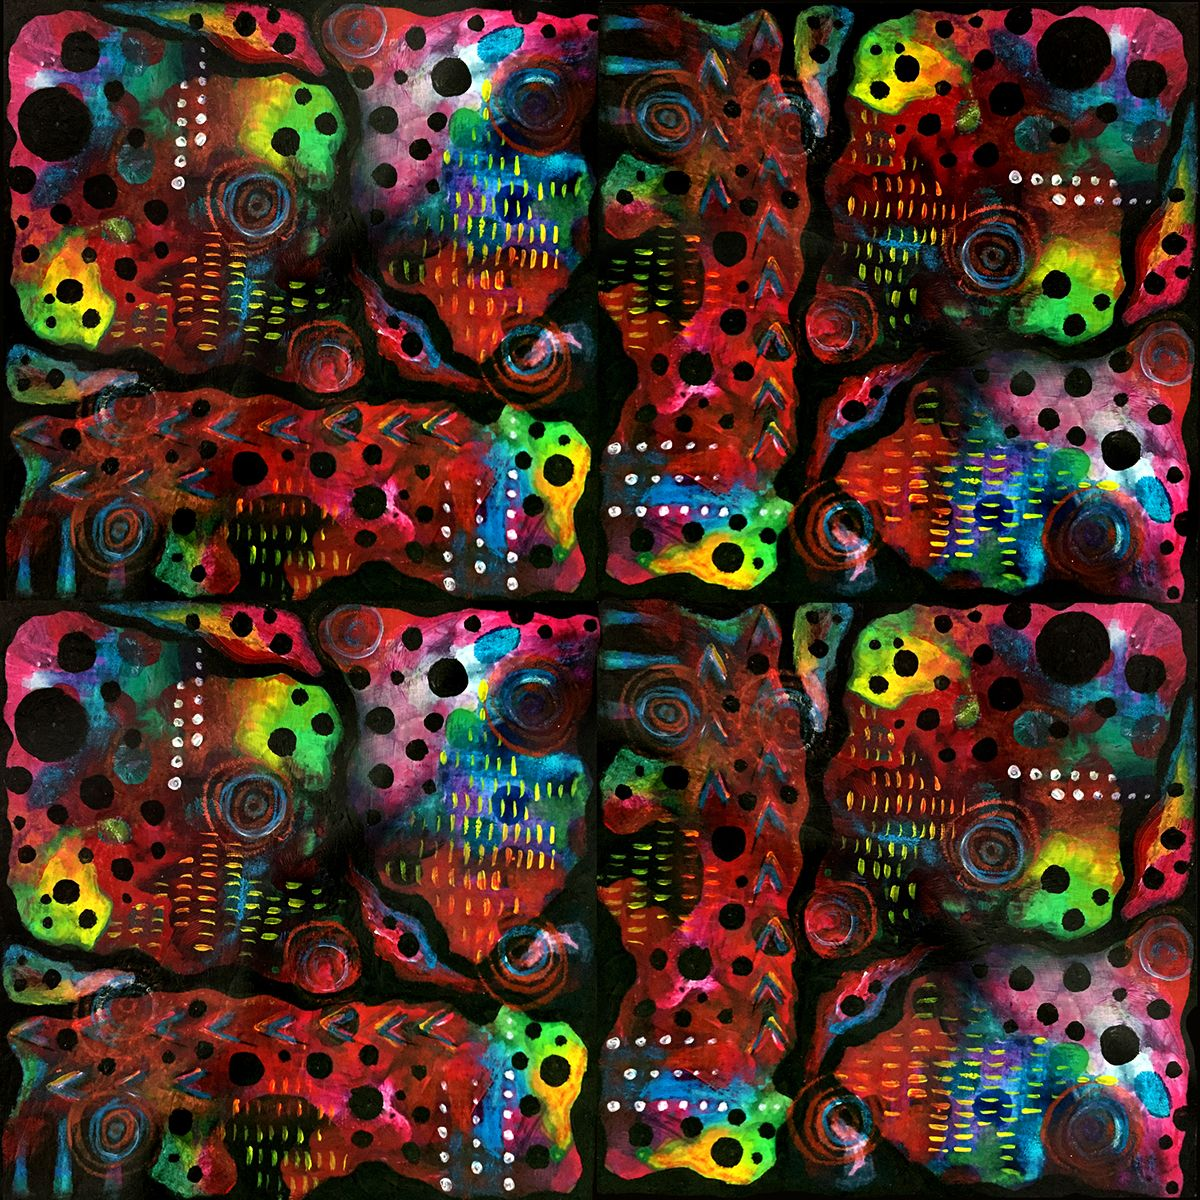 Pattern: Chaos Theory 1 Copyright 2015 Sharon Landon  Connect with me on IG at sharon.landon